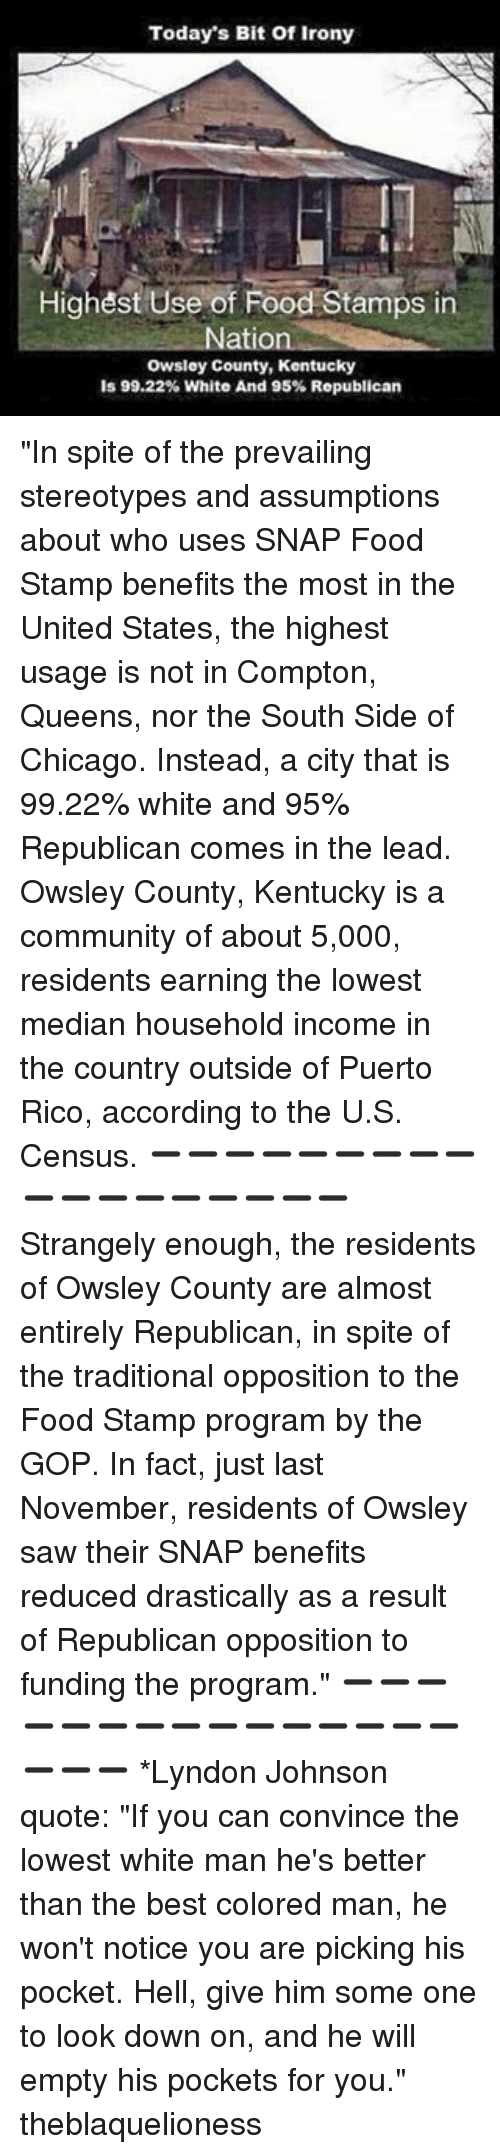 """median: Today's Bit of Irony  Highest Use of Food Stamps in  Nation  owsley County, Kentucky  is 99.22% White And 95% Republican """"In spite of the prevailing stereotypes and assumptions about who uses SNAP Food Stamp benefits the most in the United States, the highest usage is not in Compton, Queens, nor the South Side of Chicago. Instead, a city that is 99.22% white and 95% Republican comes in the lead. Owsley County, Kentucky is a community of about 5,000, residents earning the lowest median household income in the country outside of Puerto Rico, according to the U.S. Census. ➖➖➖➖➖➖➖➖➖➖➖➖➖➖➖➖➖➖ Strangely enough, the residents of Owsley County are almost entirely Republican, in spite of the traditional opposition to the Food Stamp program by the GOP. In fact, just last November, residents of Owsley saw their SNAP benefits reduced drastically as a result of Republican opposition to funding the program."""" ➖➖➖➖➖➖➖➖➖➖➖➖➖➖➖➖➖➖ *Lyndon Johnson quote: """"If you can convince the lowest white man he's better than the best colored man, he won't notice you are picking his pocket. Hell, give him some one to look down on, and he will empty his pockets for you."""" theblaquelioness"""